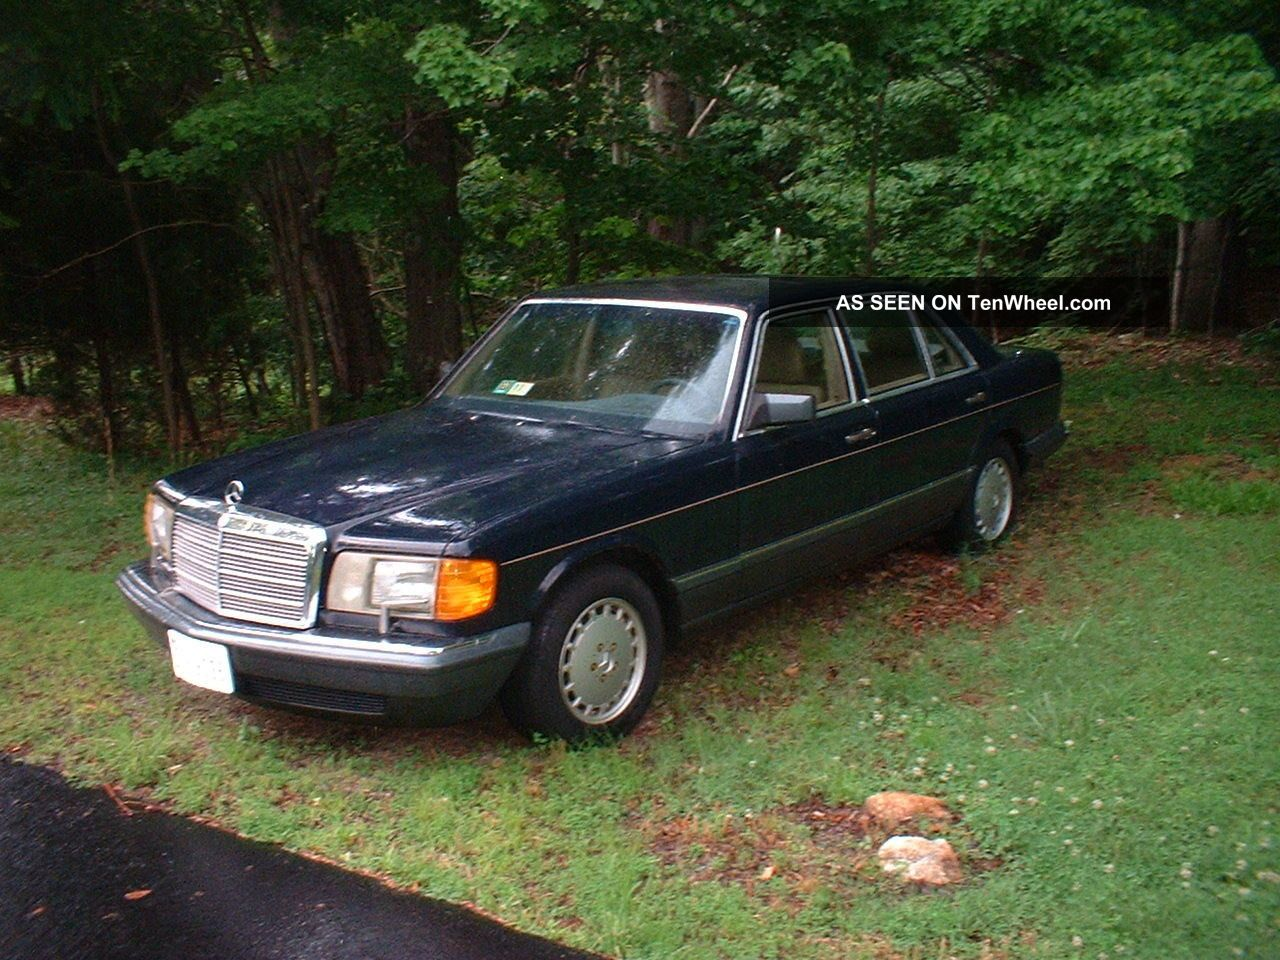 1988 mercedes benz 420 sel mercedes mechanic replaced engine for 1988 mercedes benz 420sel